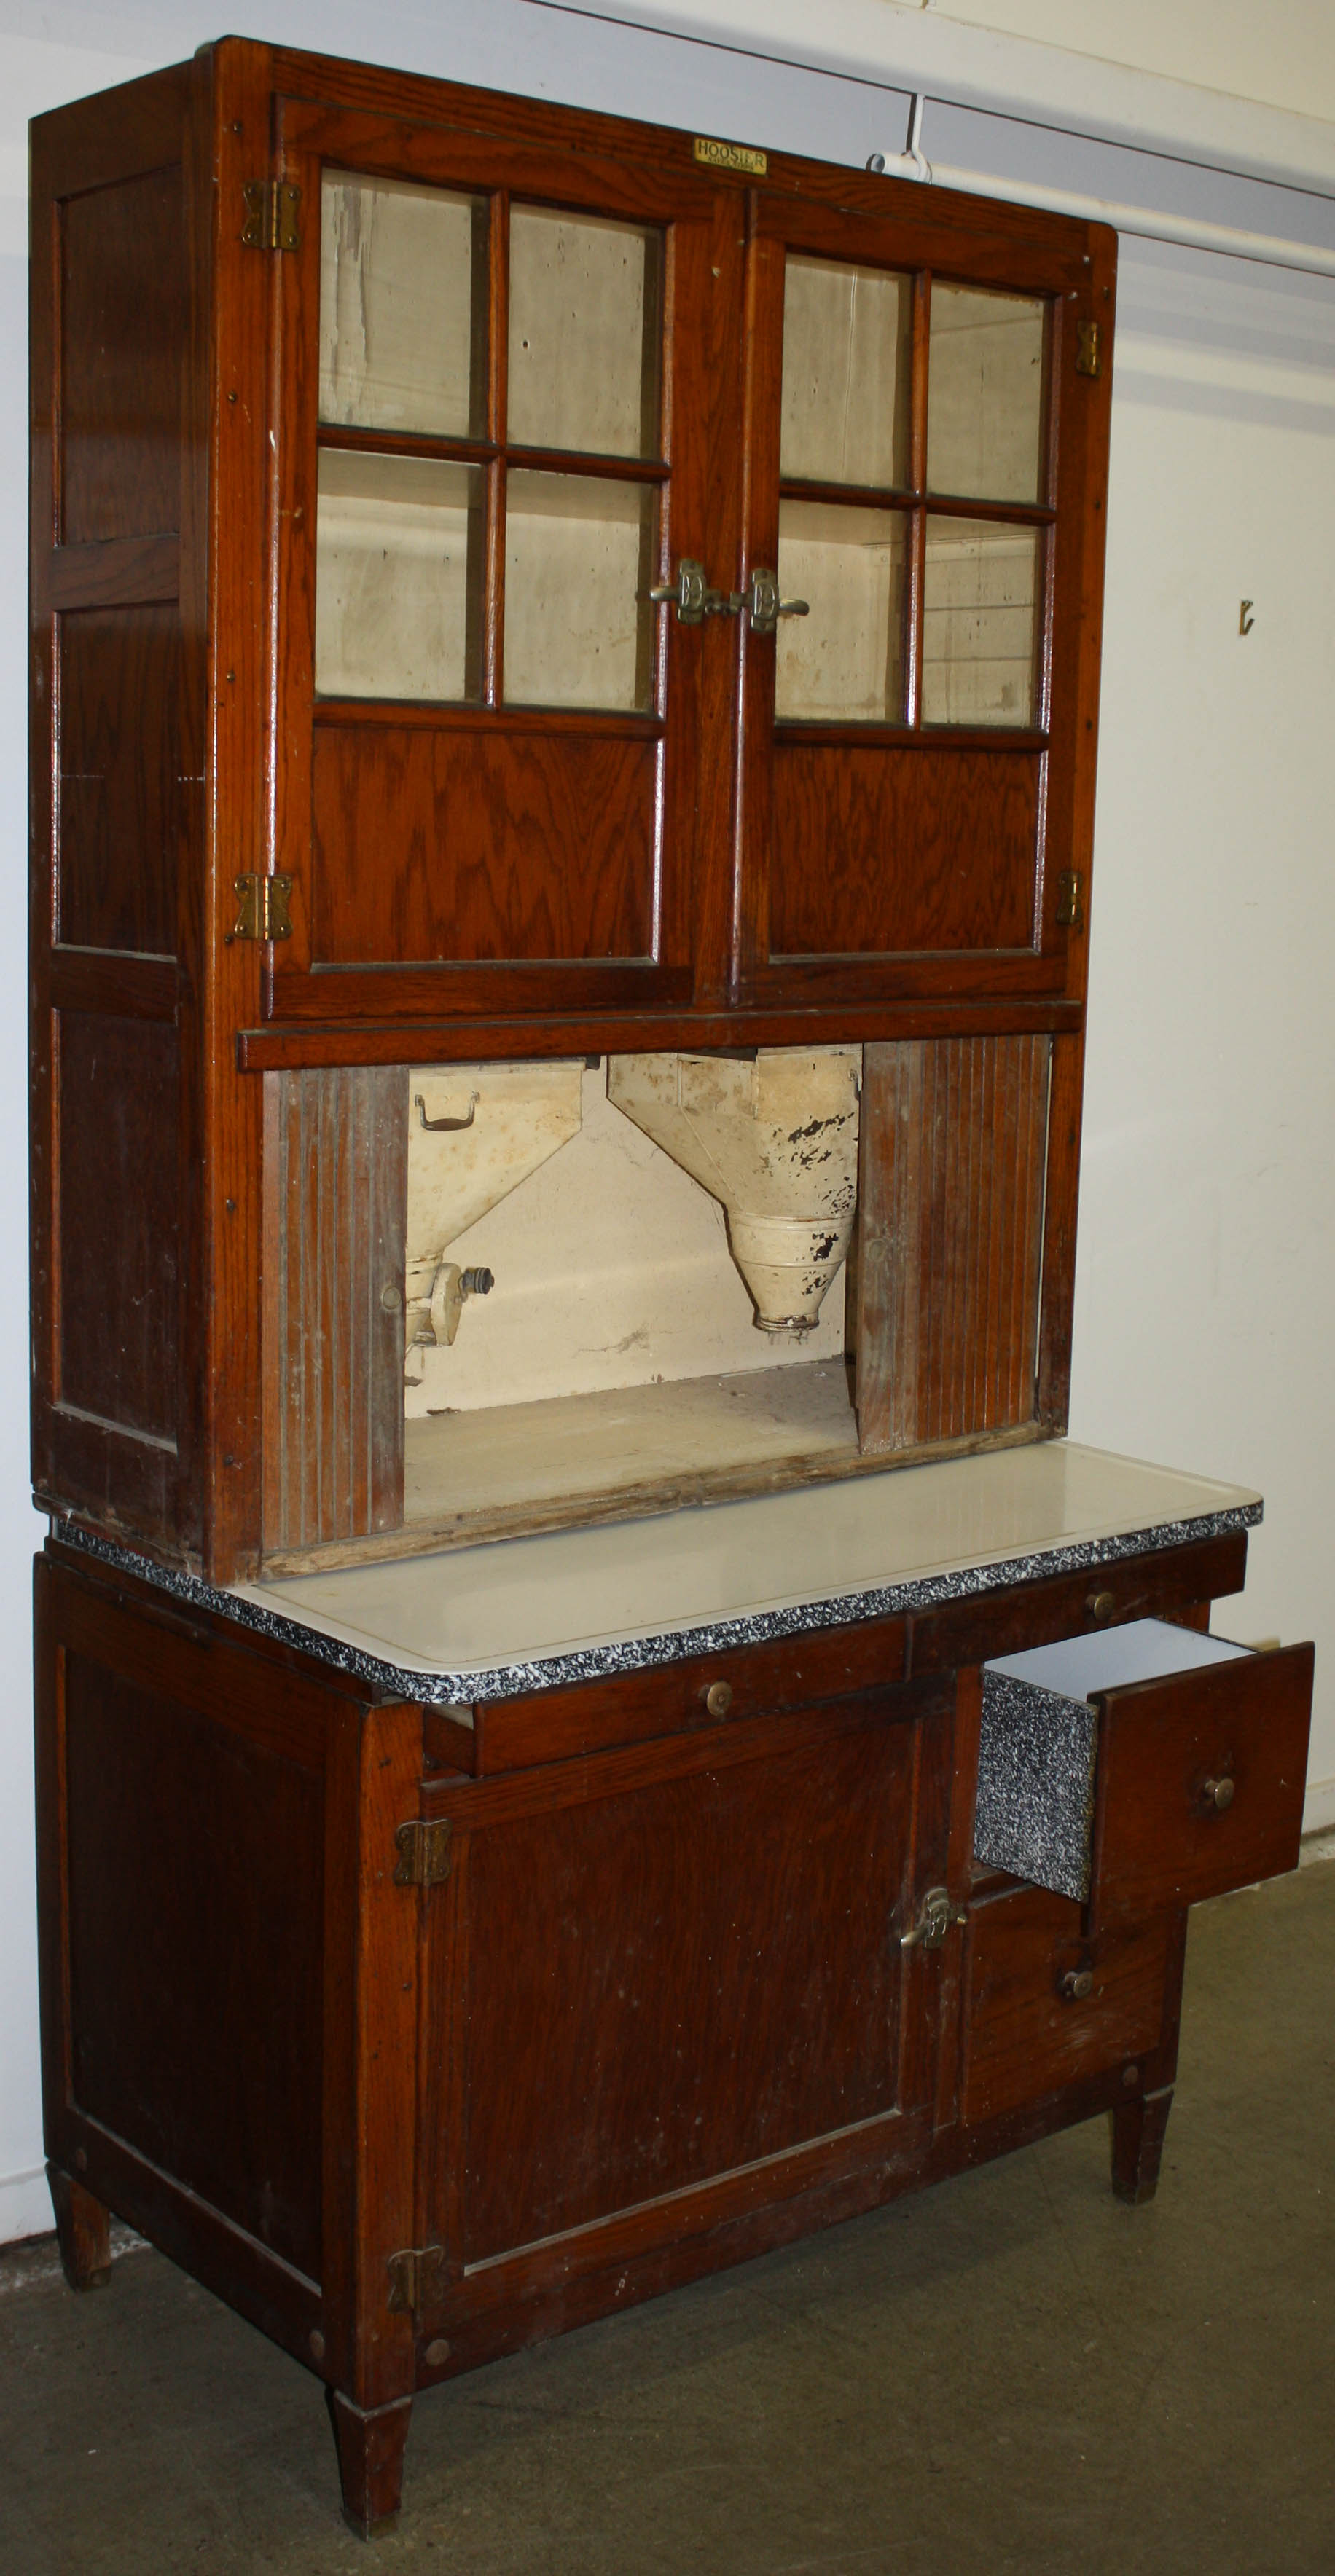 Hoosier Bakers Cabinet.JPG